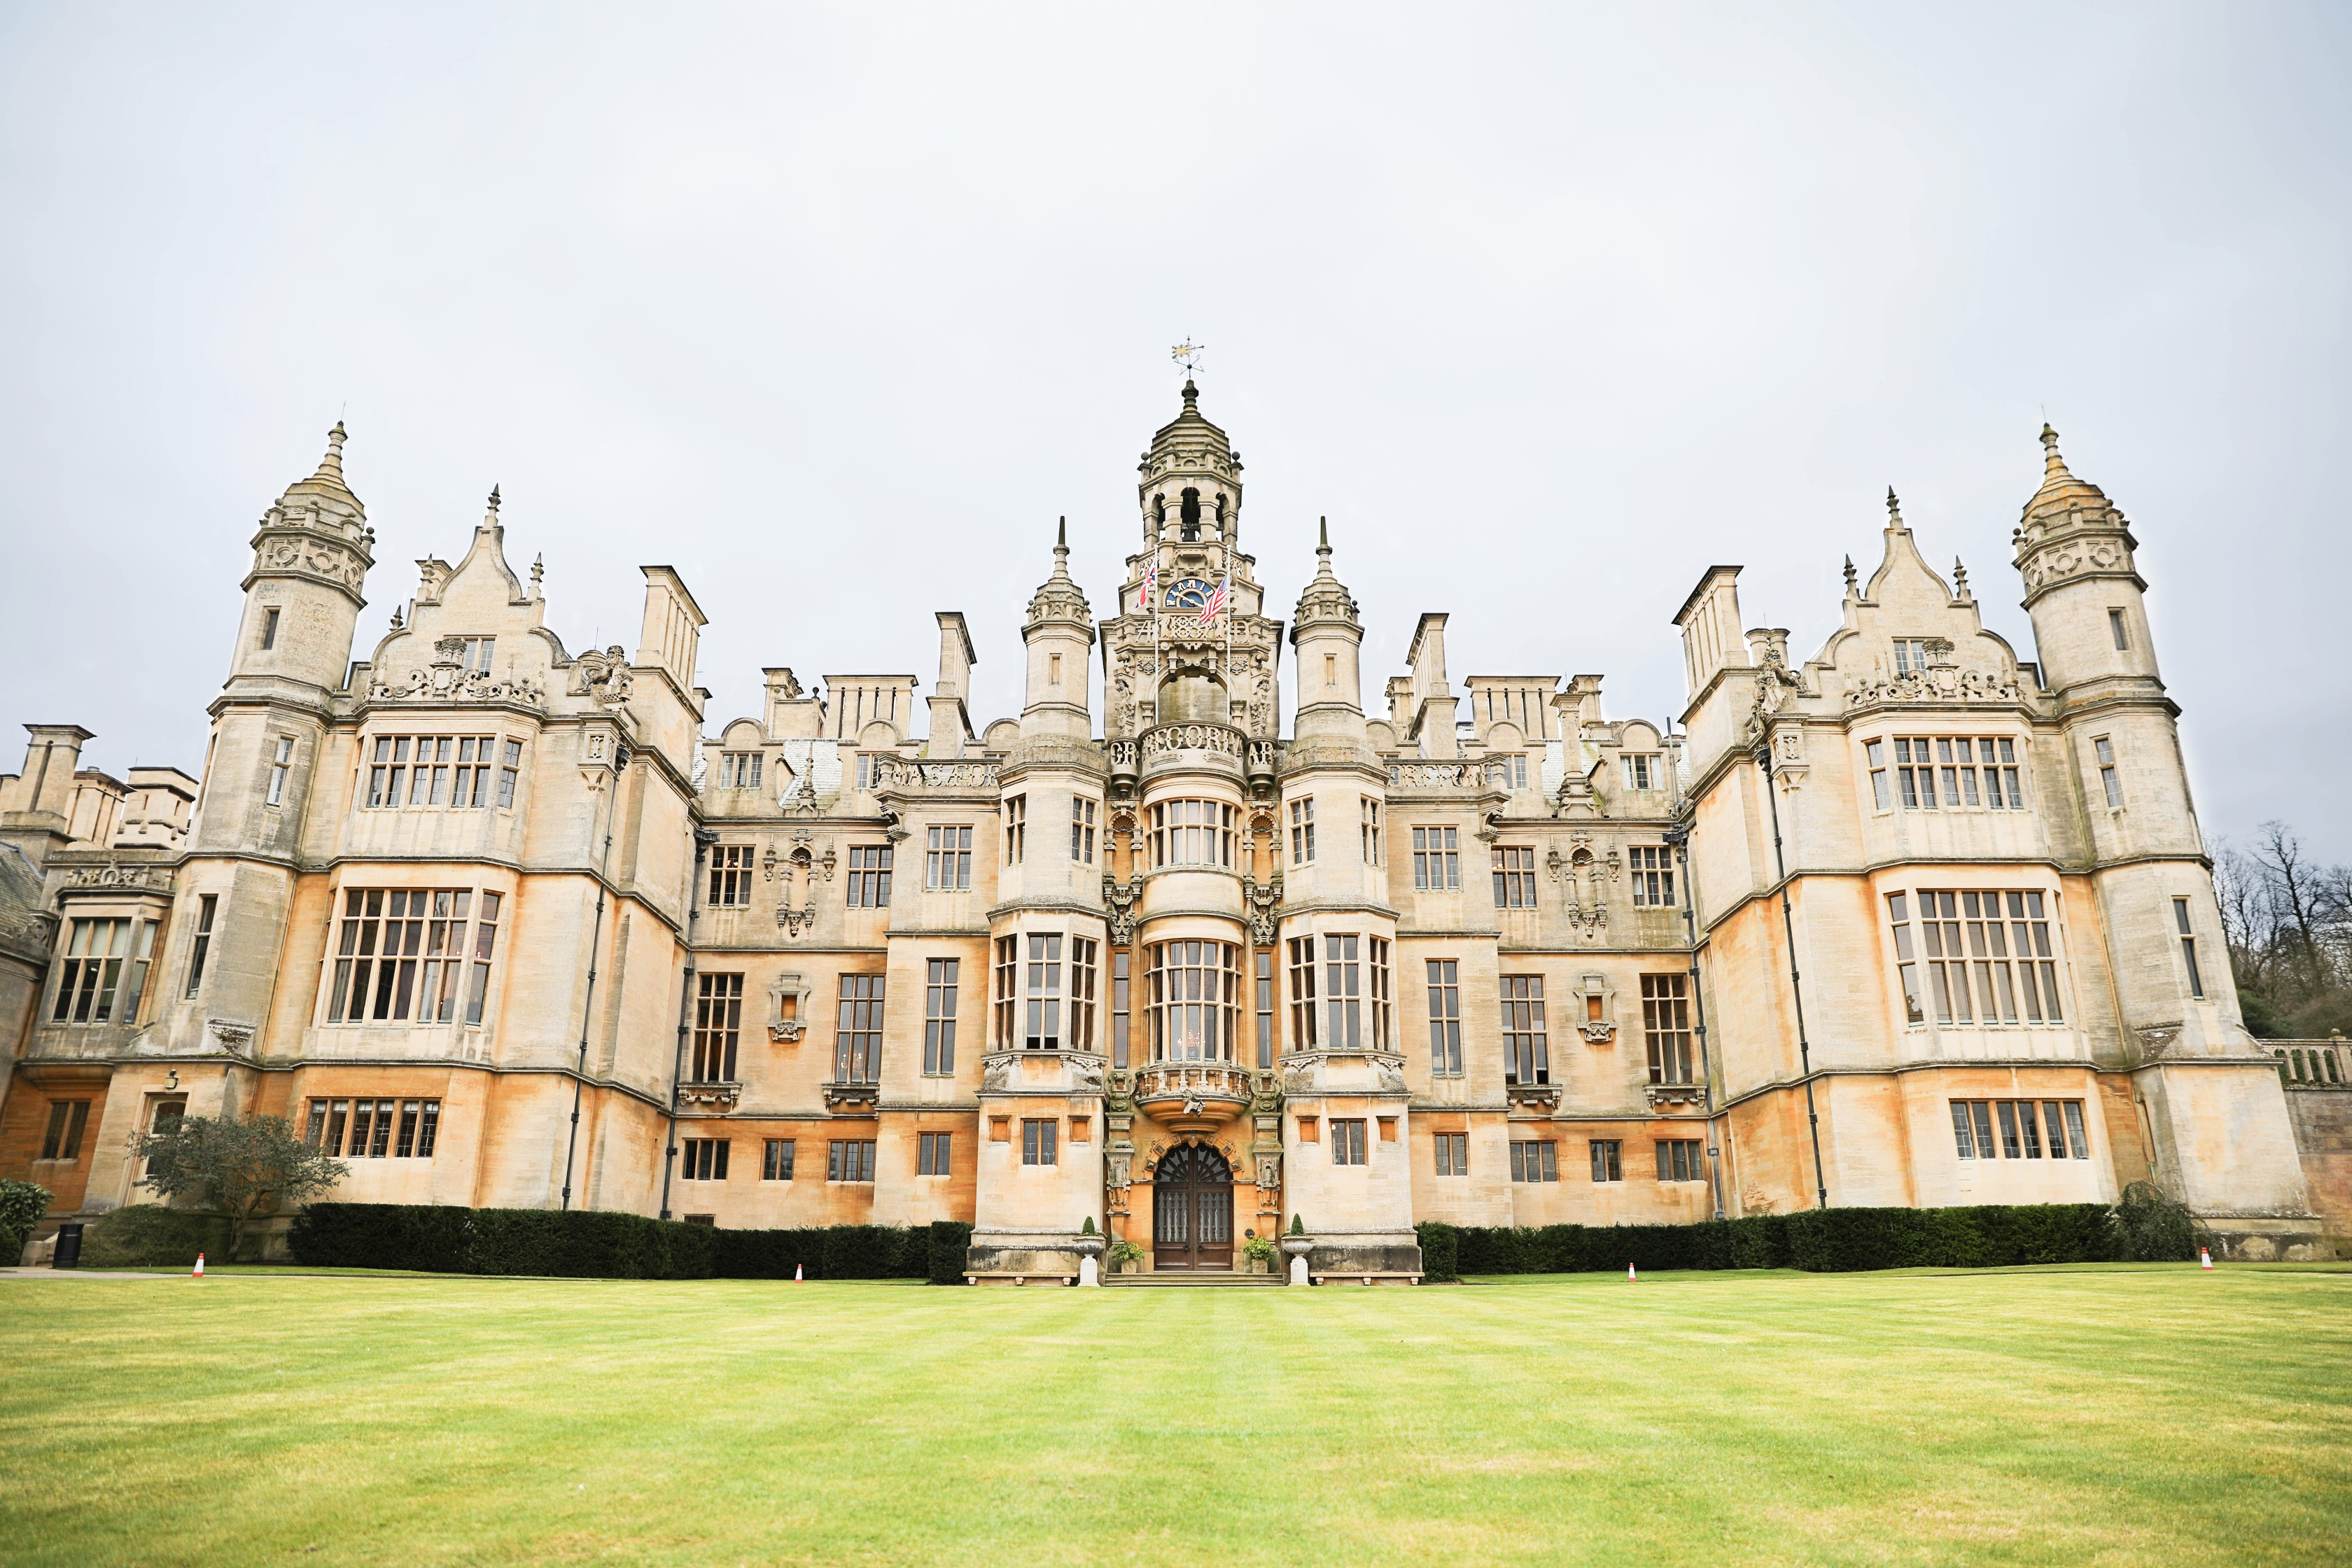 Harlaxton College in Grantham north of London! London castle you need to go visit! The prettiest castle I have ever seen! By Lauren Lindmark on dailydoseofcharm.com daily dose of charm